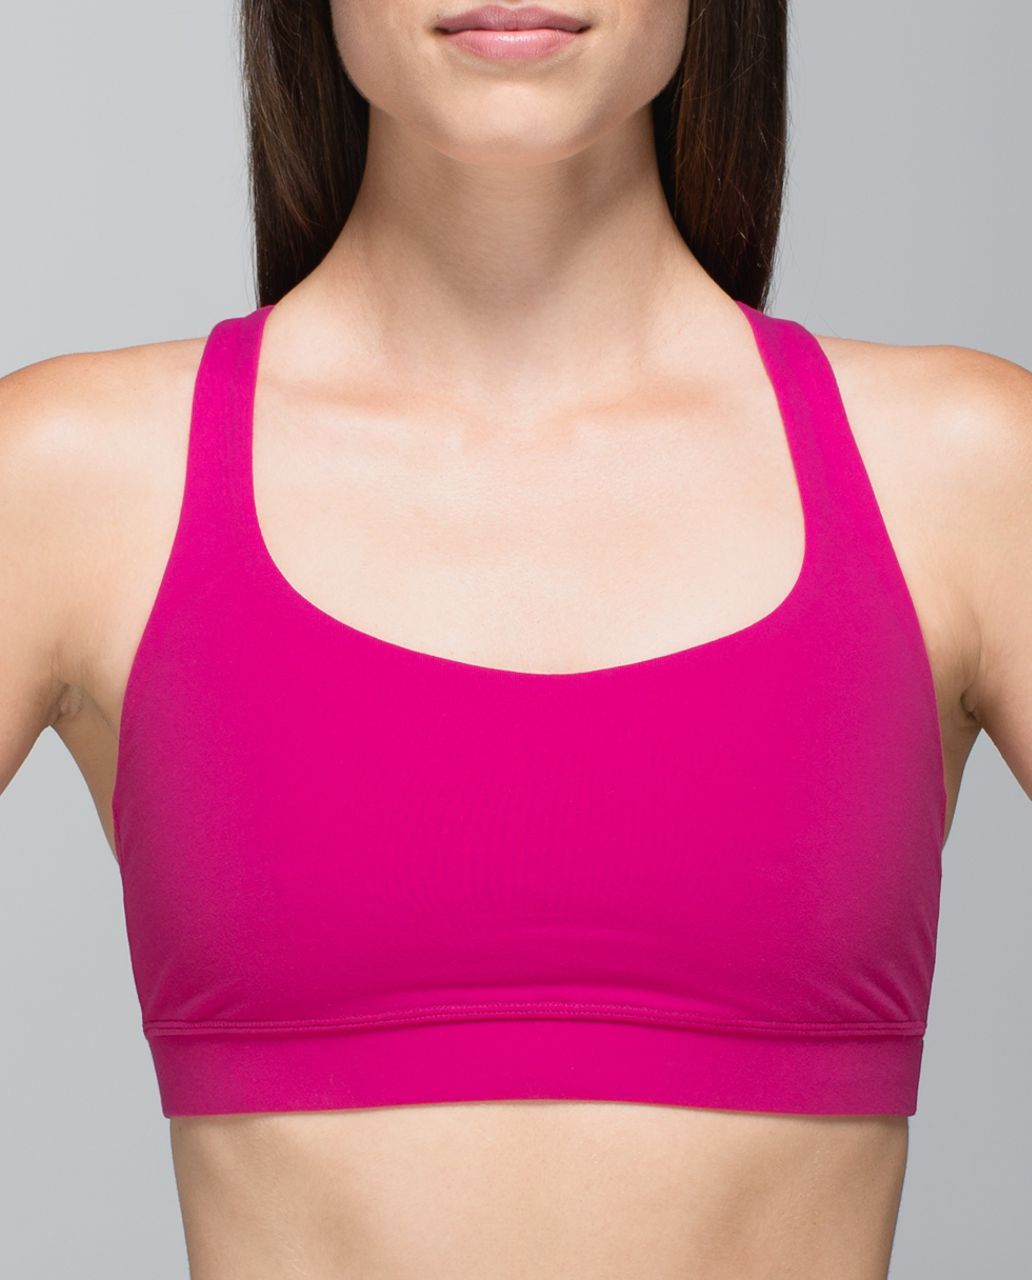 Lululemon 50 Rep Bra - Jewelled Magenta